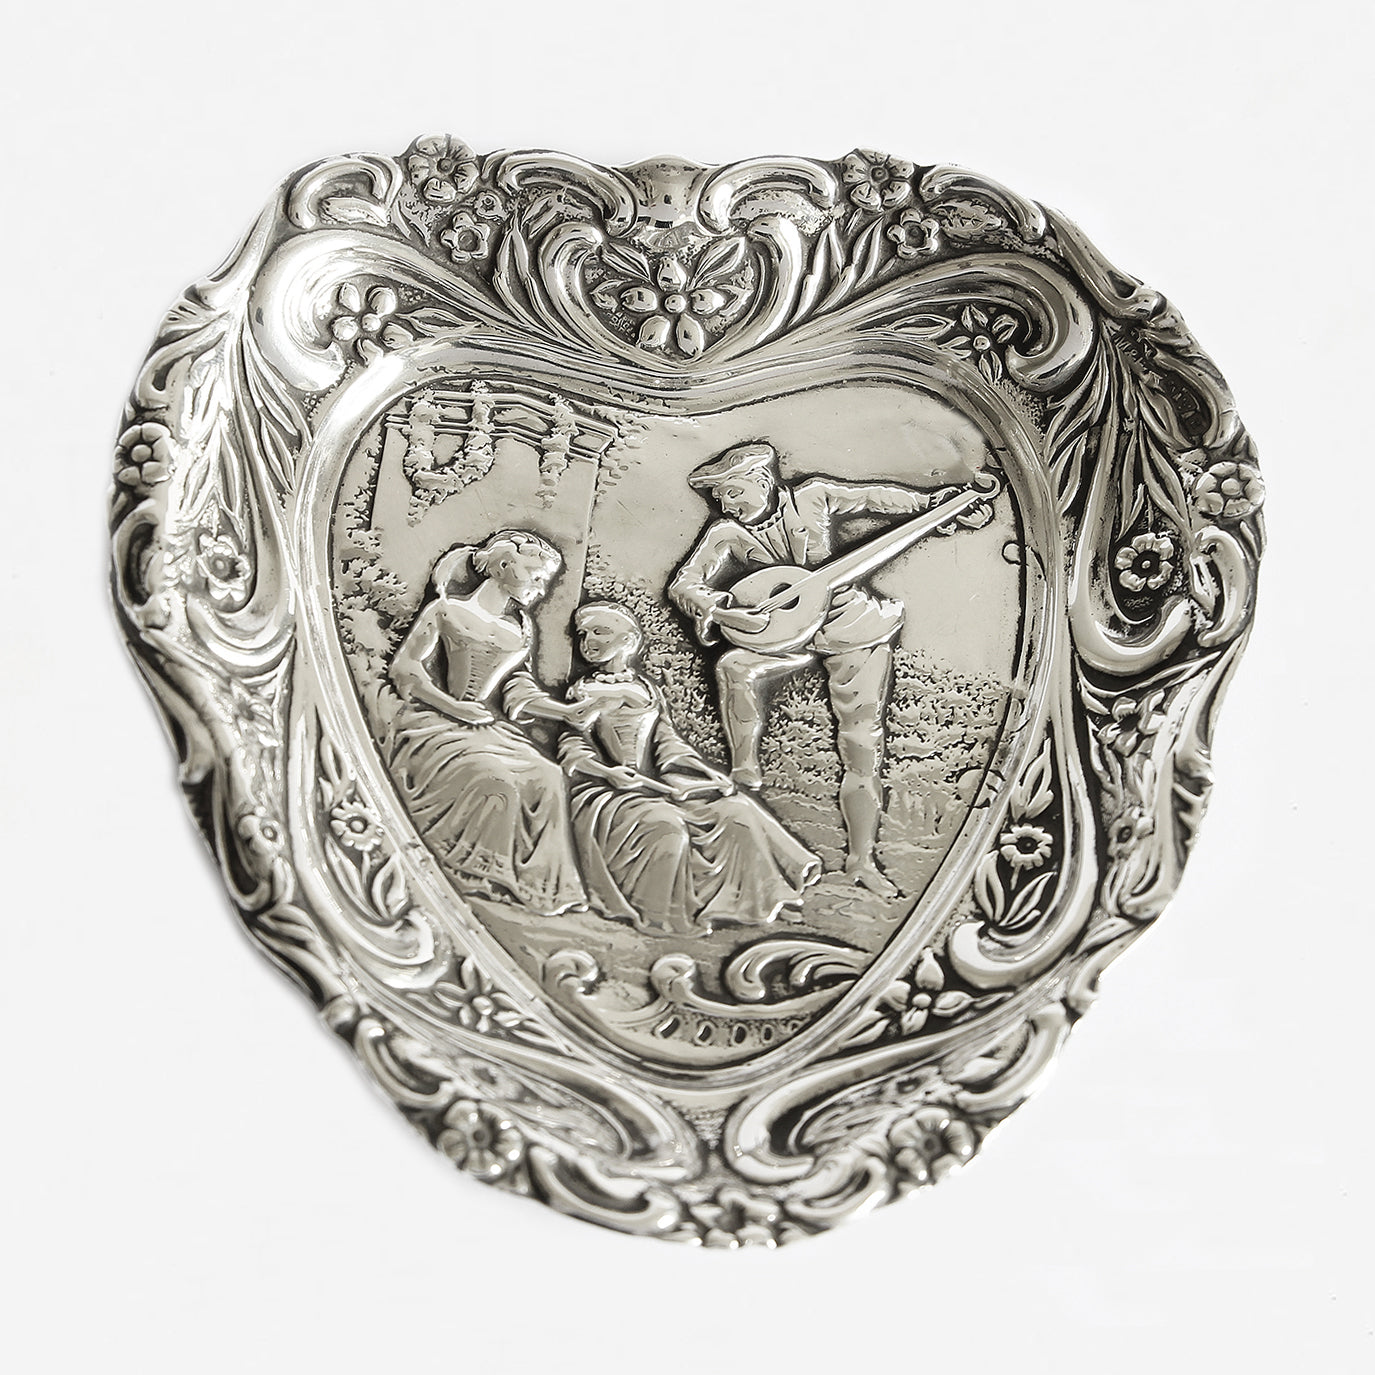 a heart shaped silver small tray with a gentleman serenading 2 ladies dated 1900